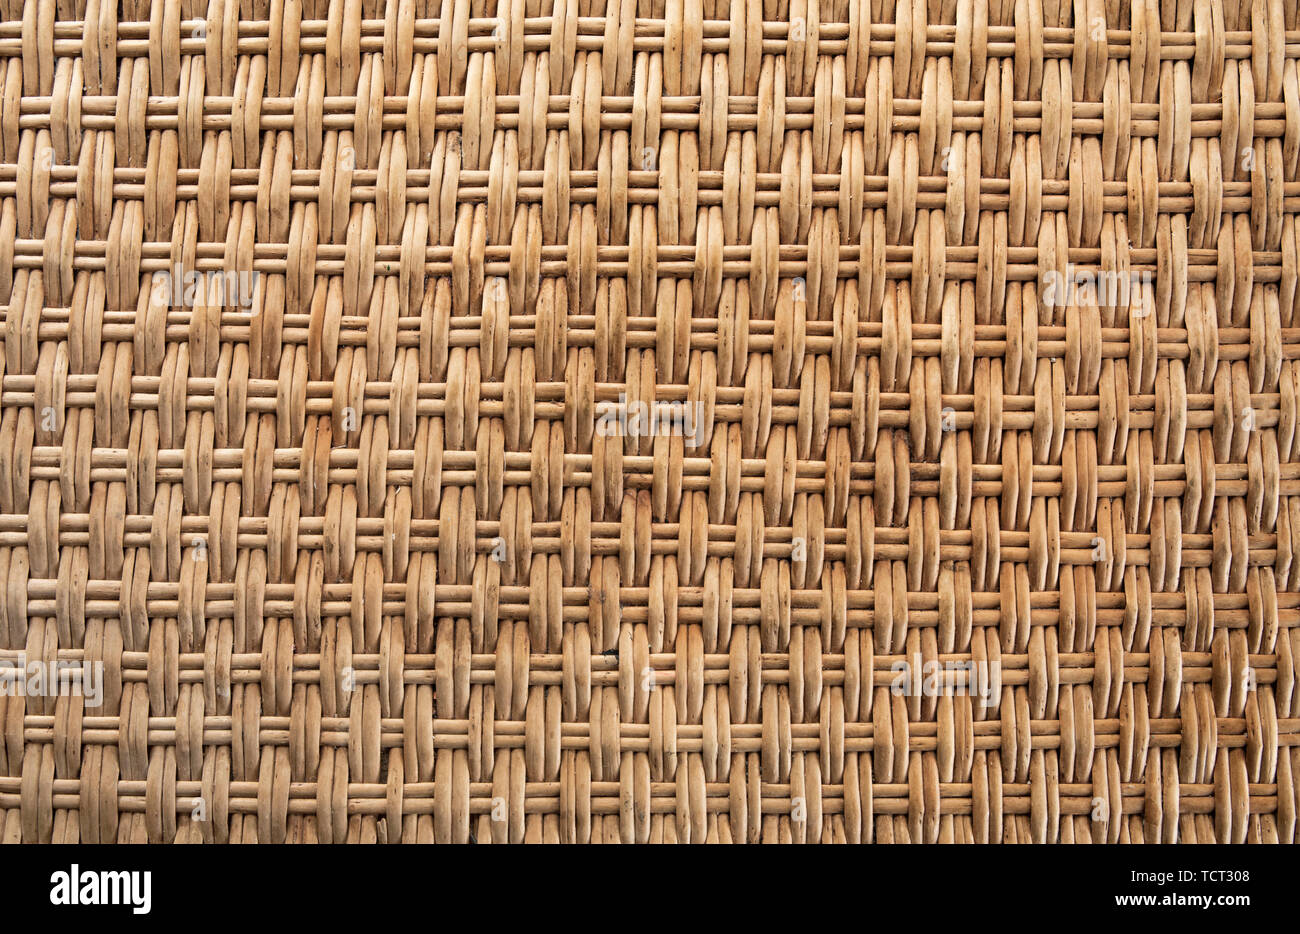 Abstract decorative wooden textured basket weaving background - Stock Image